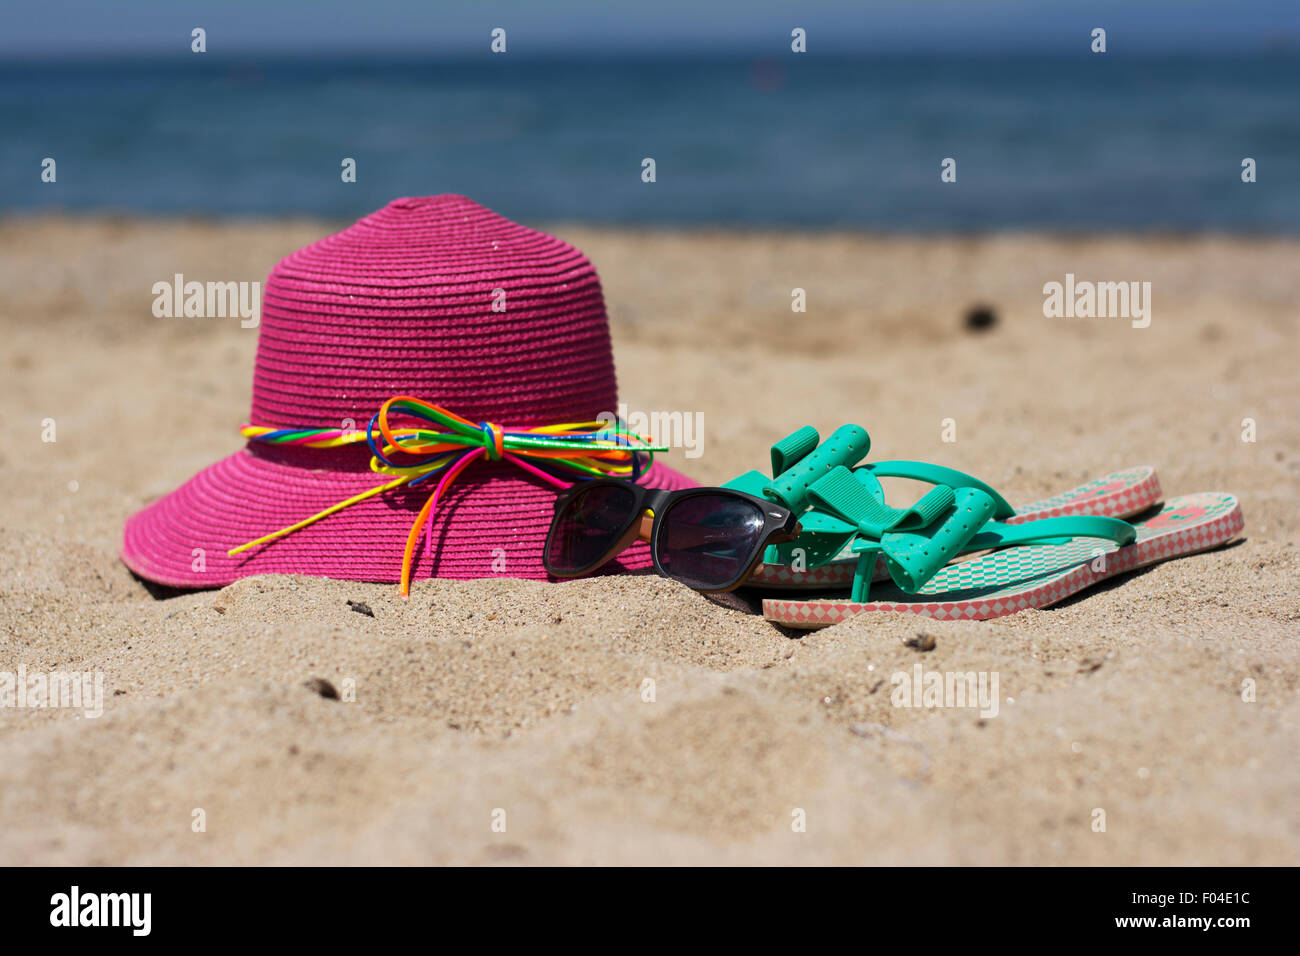 dd632416a5fce0 Summer pink hat and turquoise flip flops on a sandy beach with a sea  background -